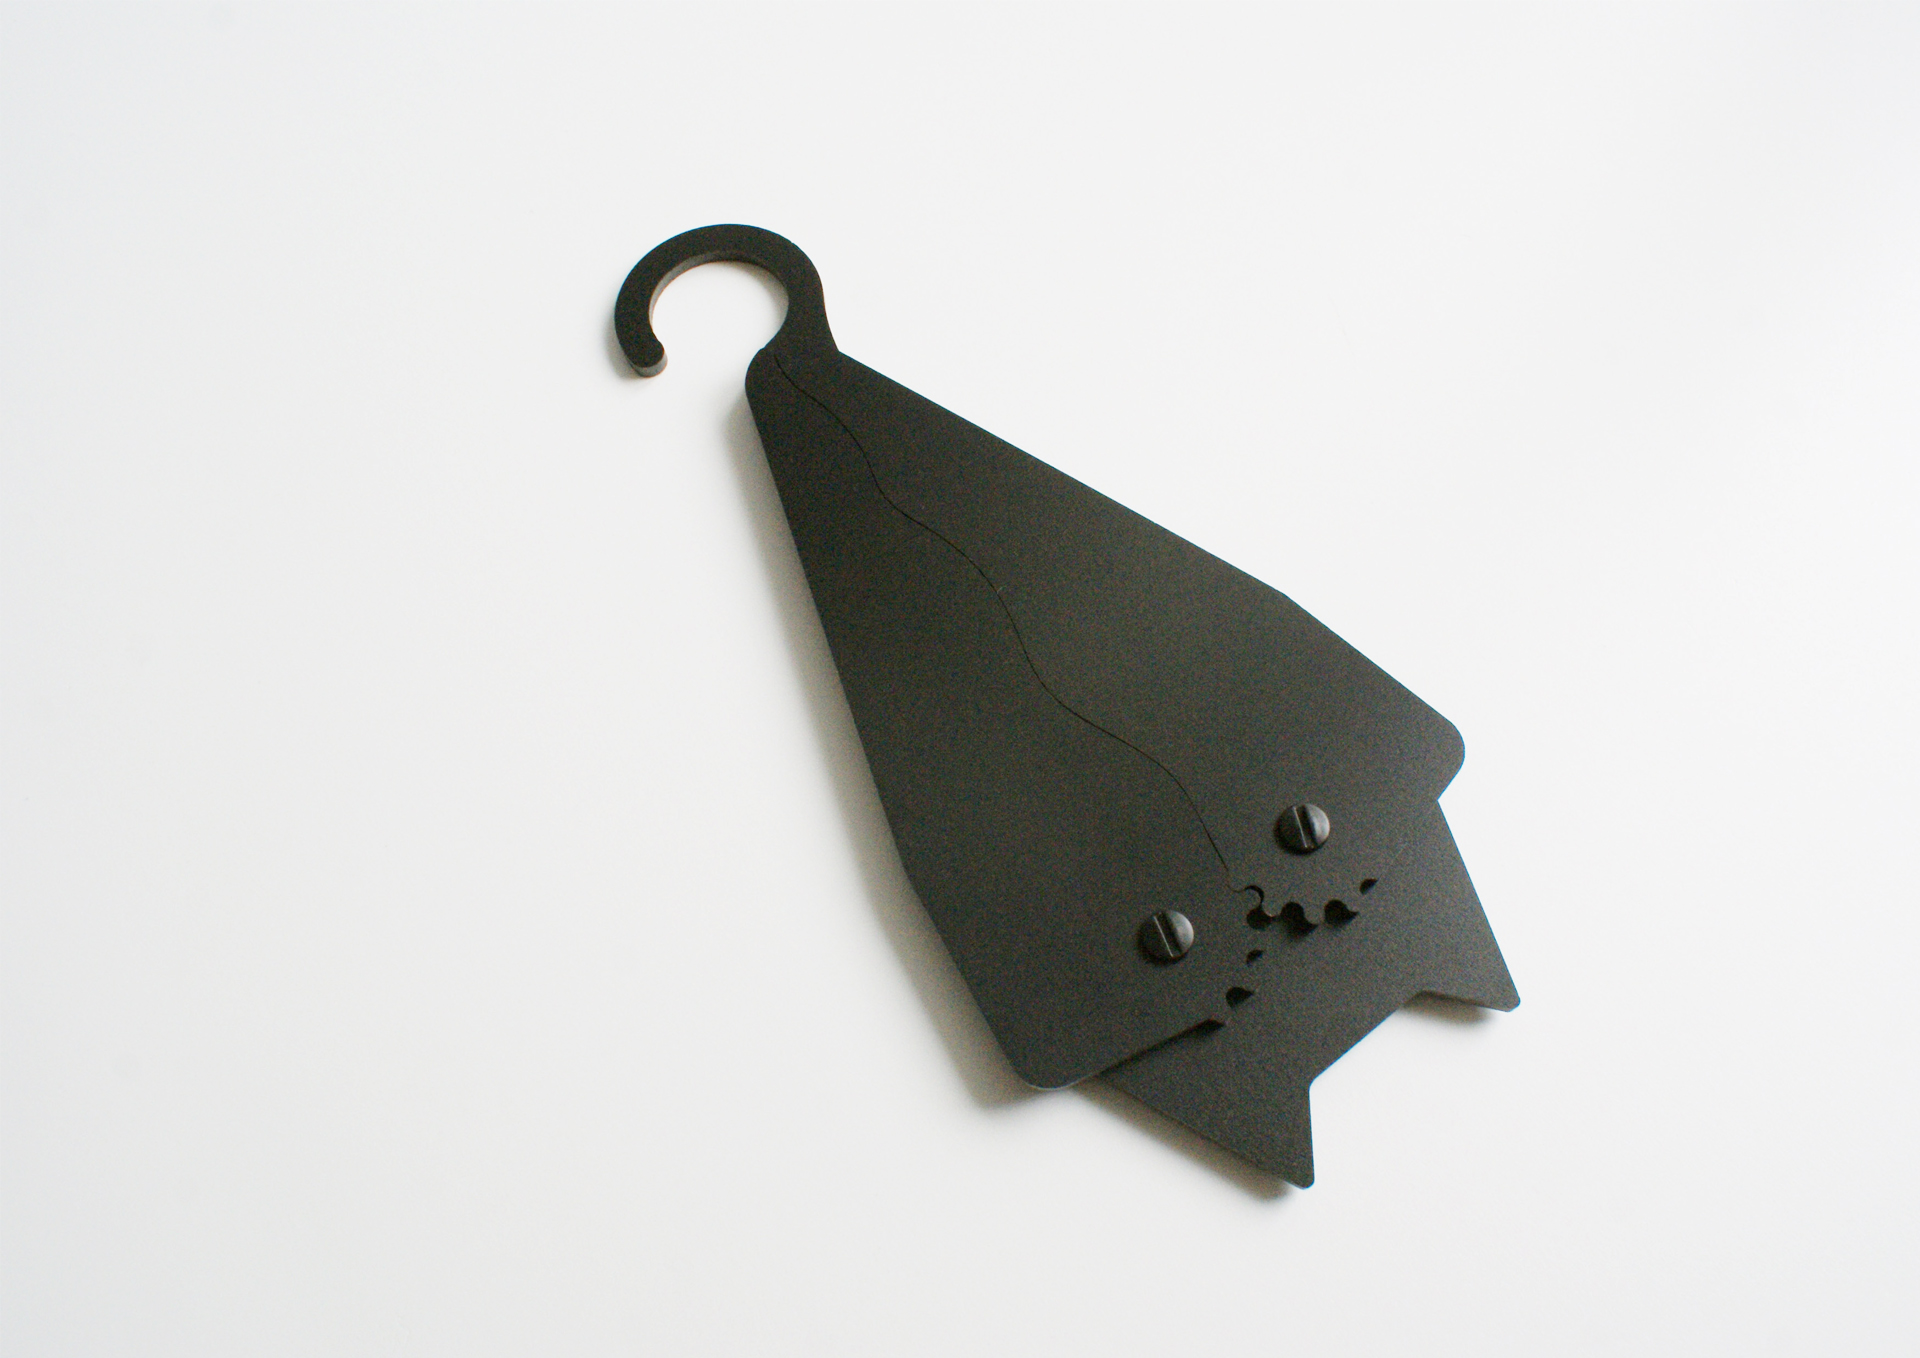 batman, bathanger, bat design,  hanger design, bathanger design, coat hanger, design hanger, bat, animal design, netopier, vesiak na saty, ramienko netopier, ramienko na saty, objekt, dizajn, product design, veronika paluchova, product designer, dizajner, vesiak